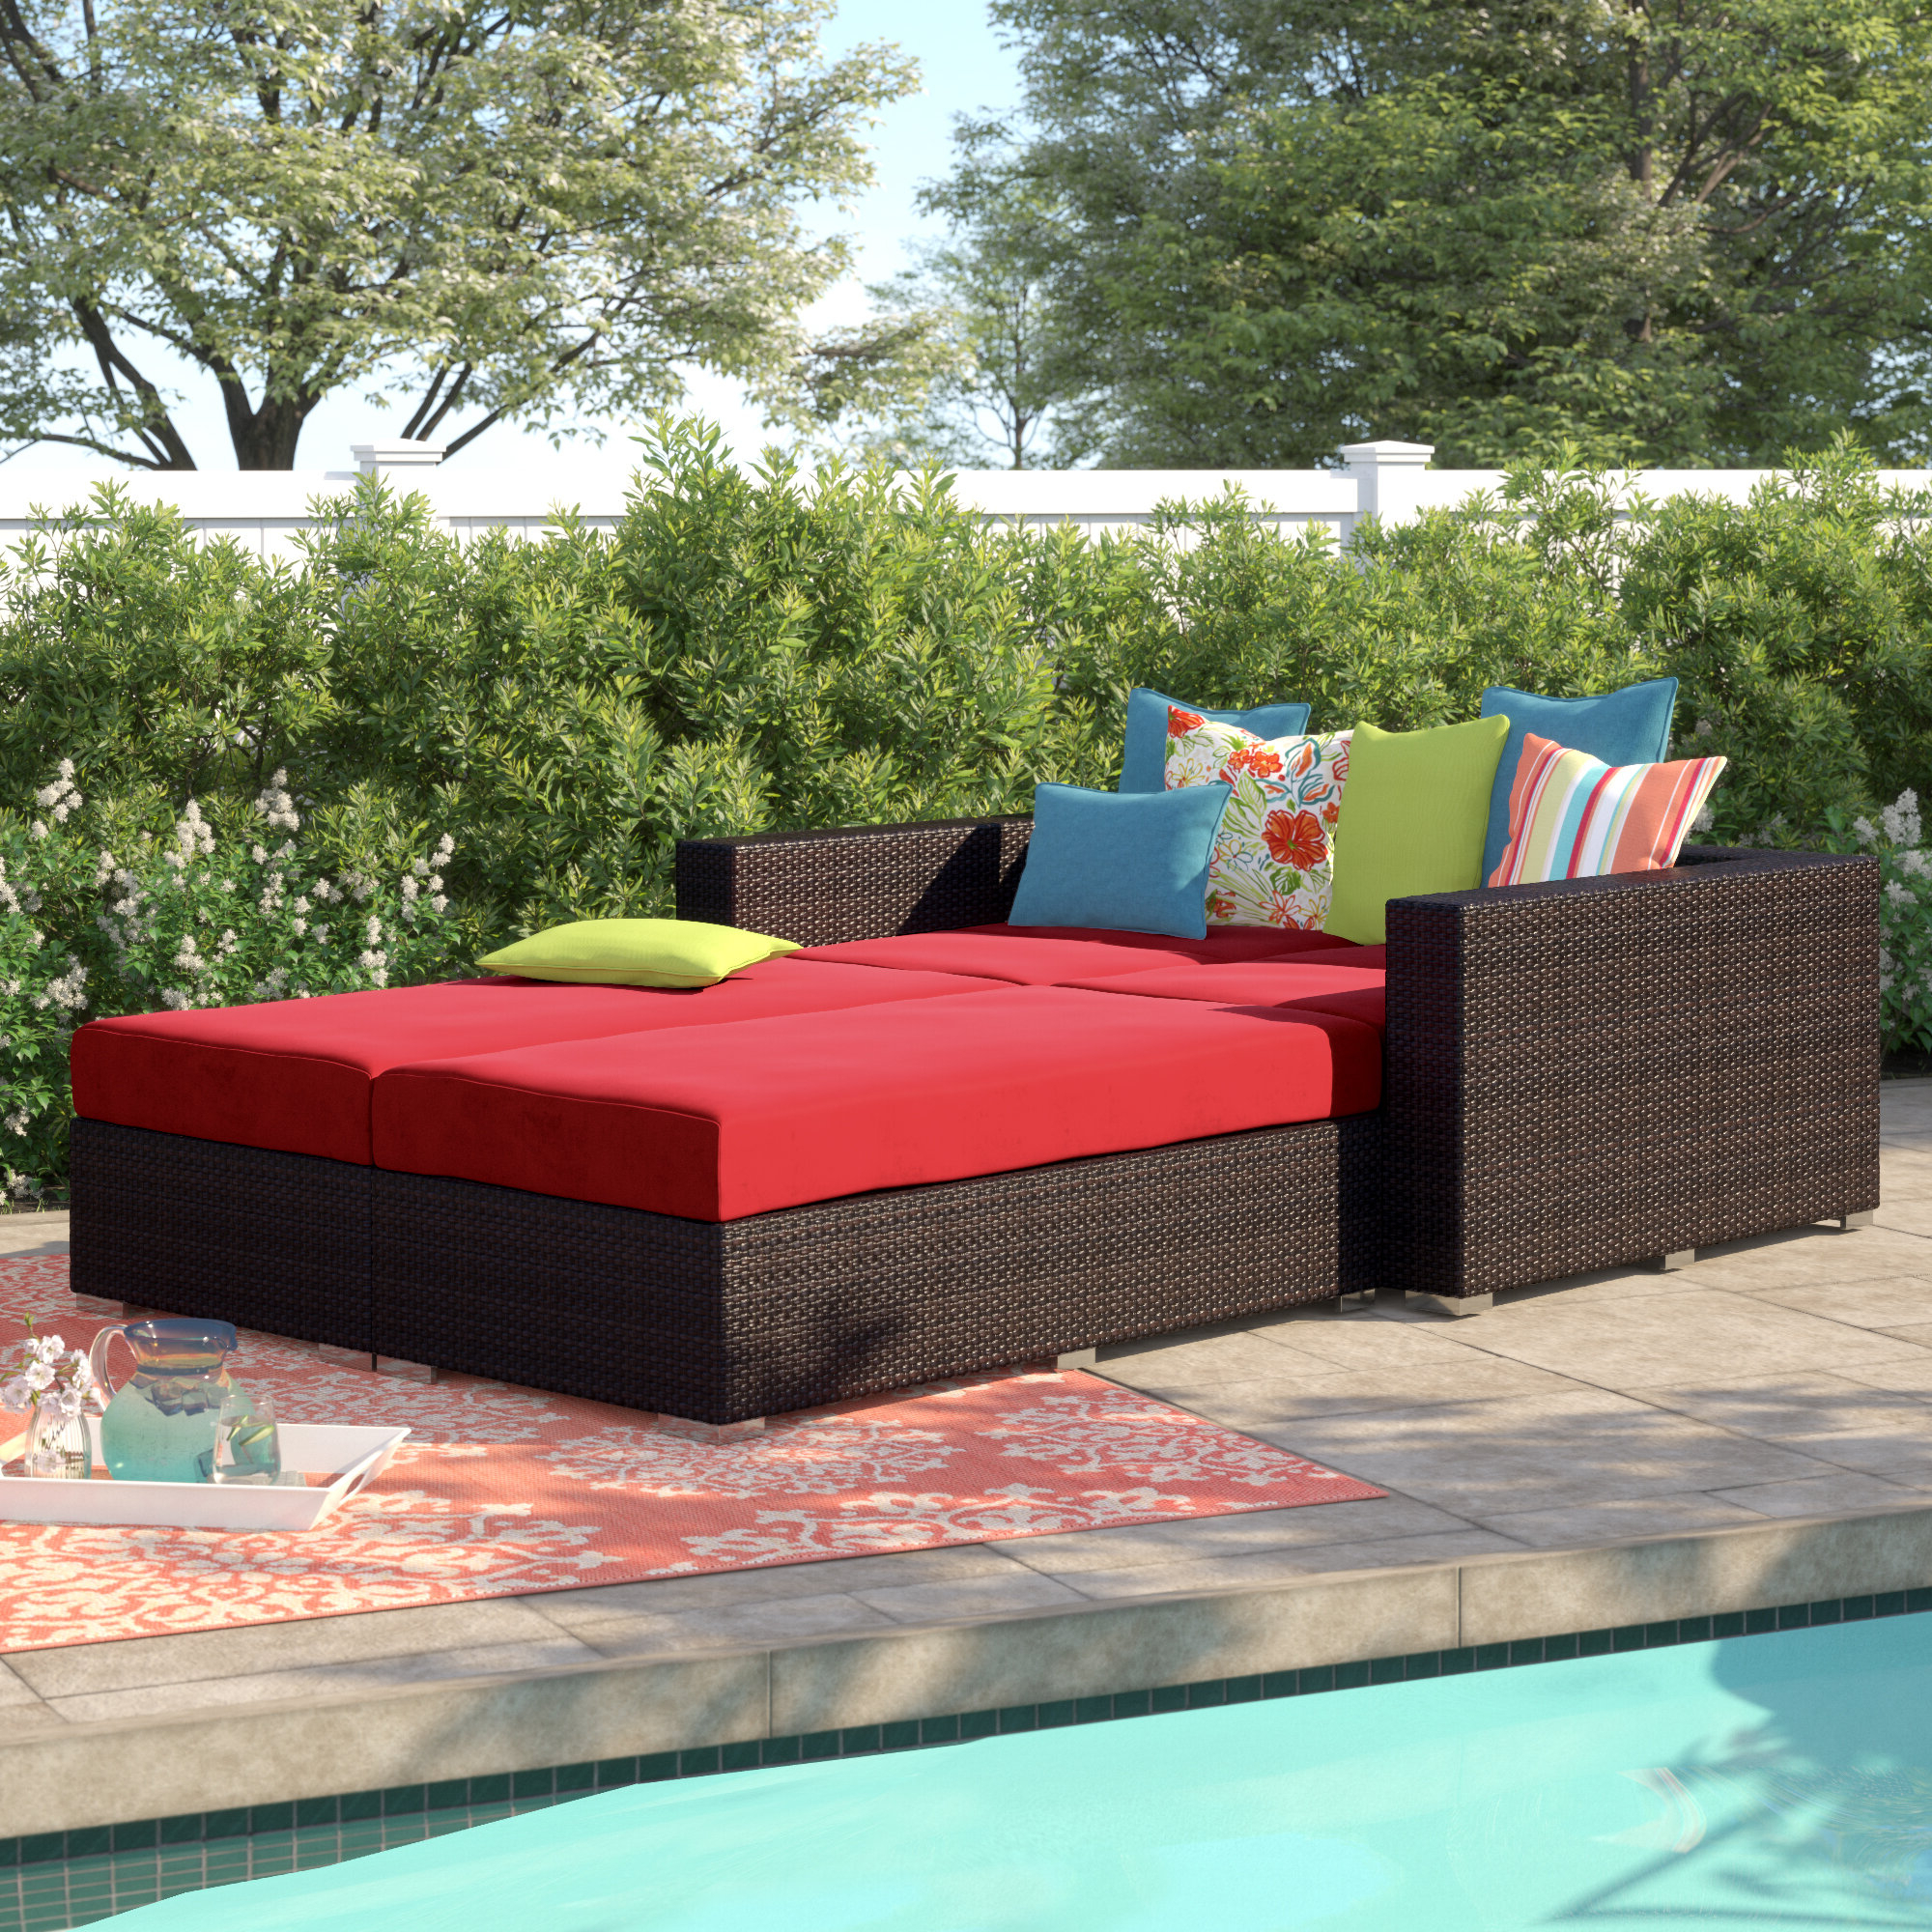 Well Liked Brentwood 4 Piece Patio Daybed With Cushions Regarding Brentwood Patio Daybeds With Cushions (View 23 of 25)